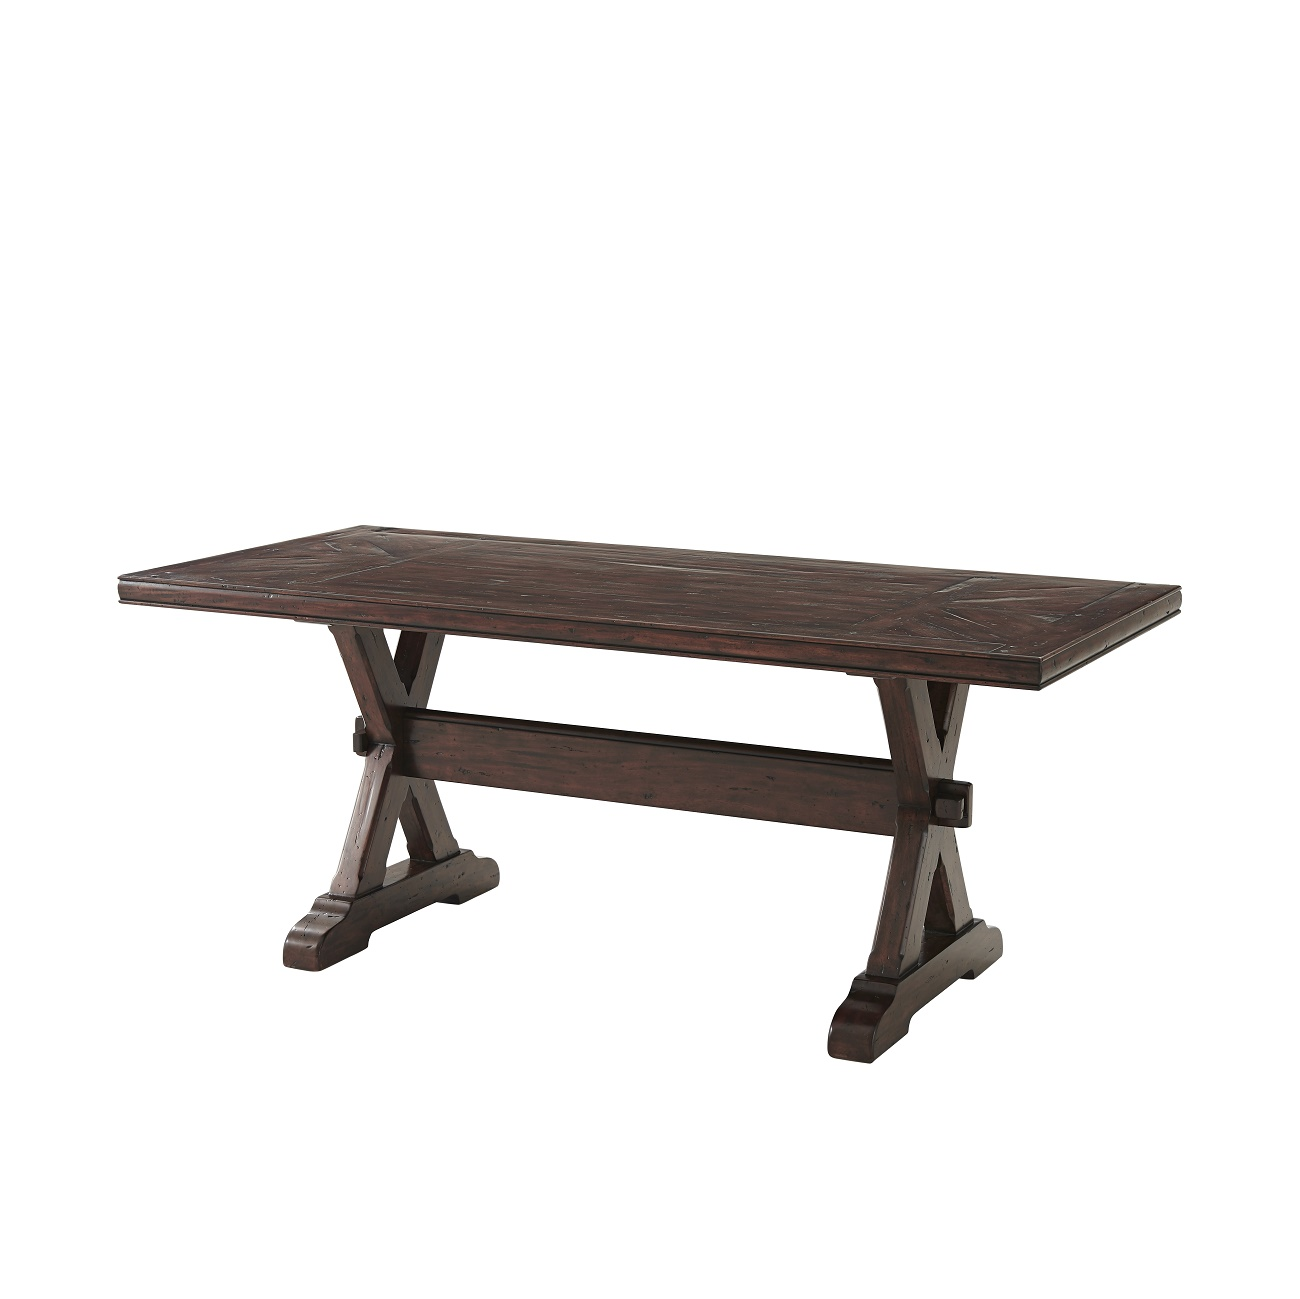 Country Accompaniment Bistro Table, Theodore Alexander Bistro Table